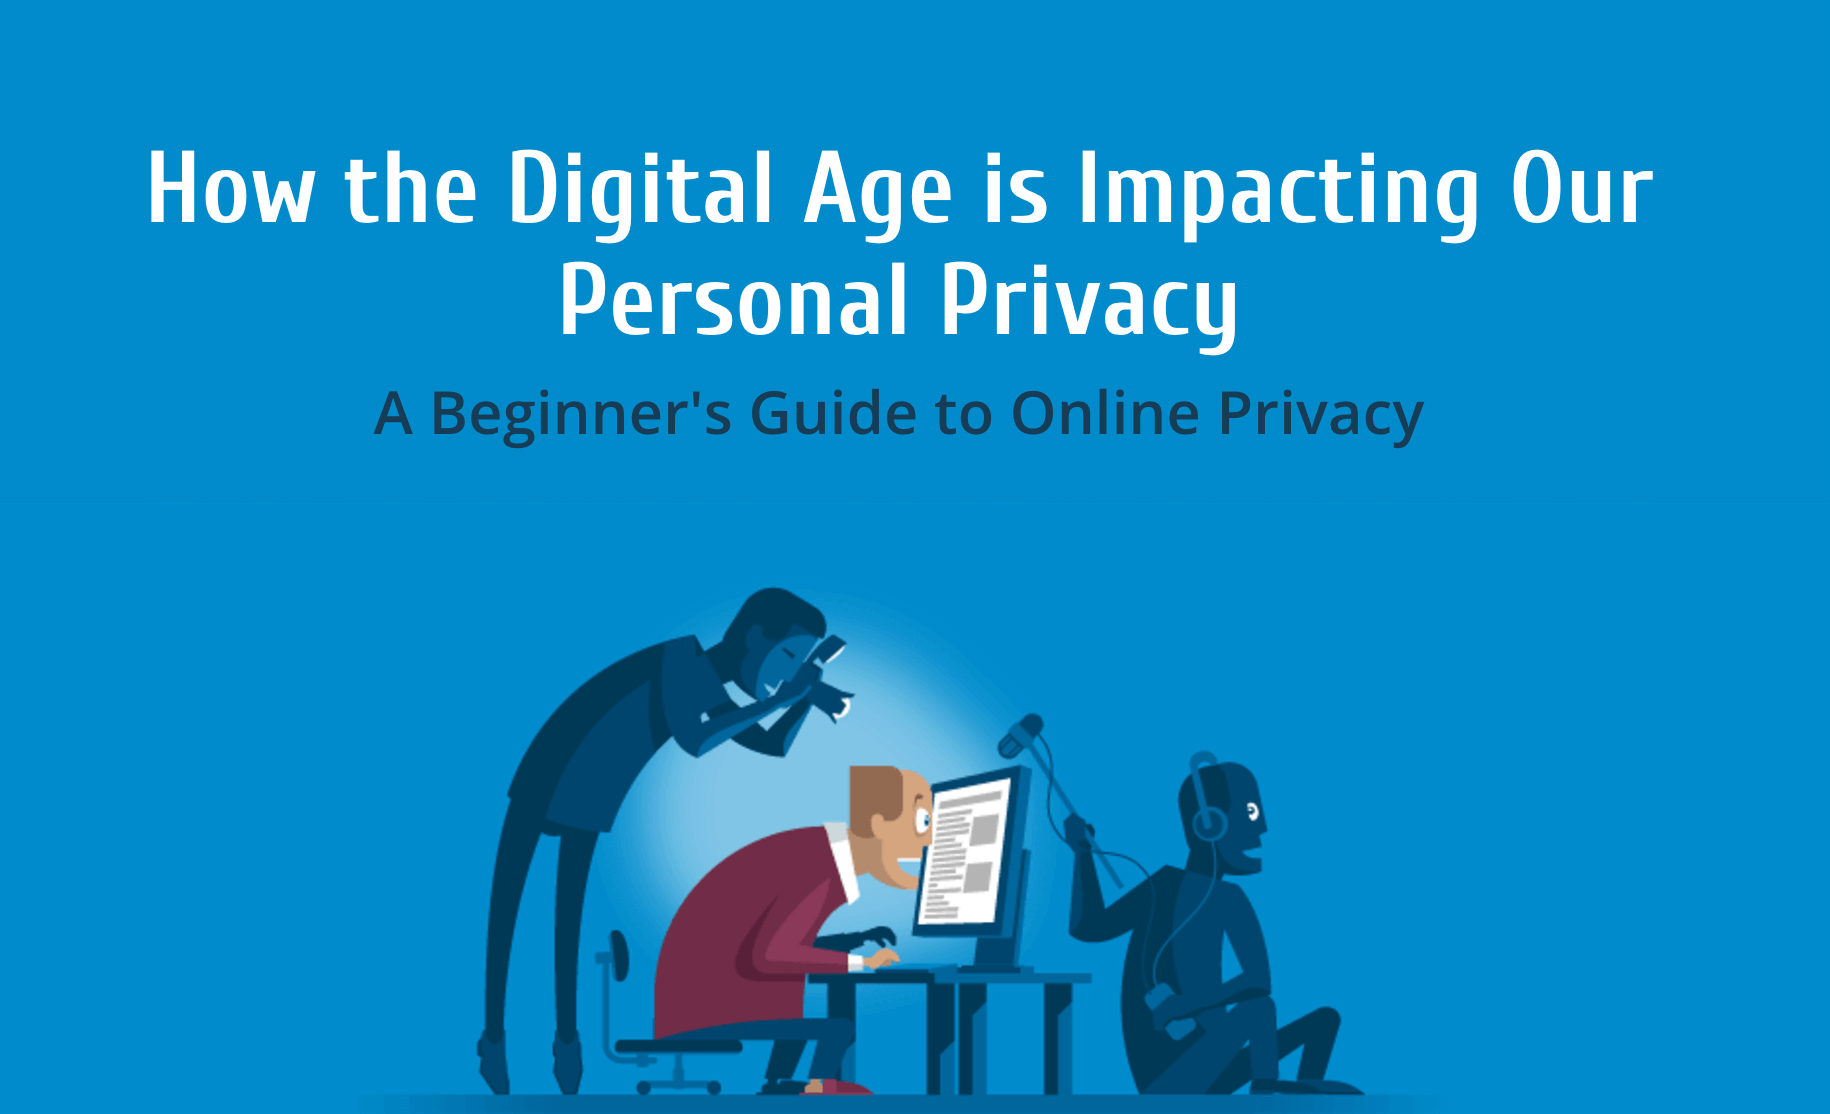 How the Digital Age is Impacting Our Personal Privacy